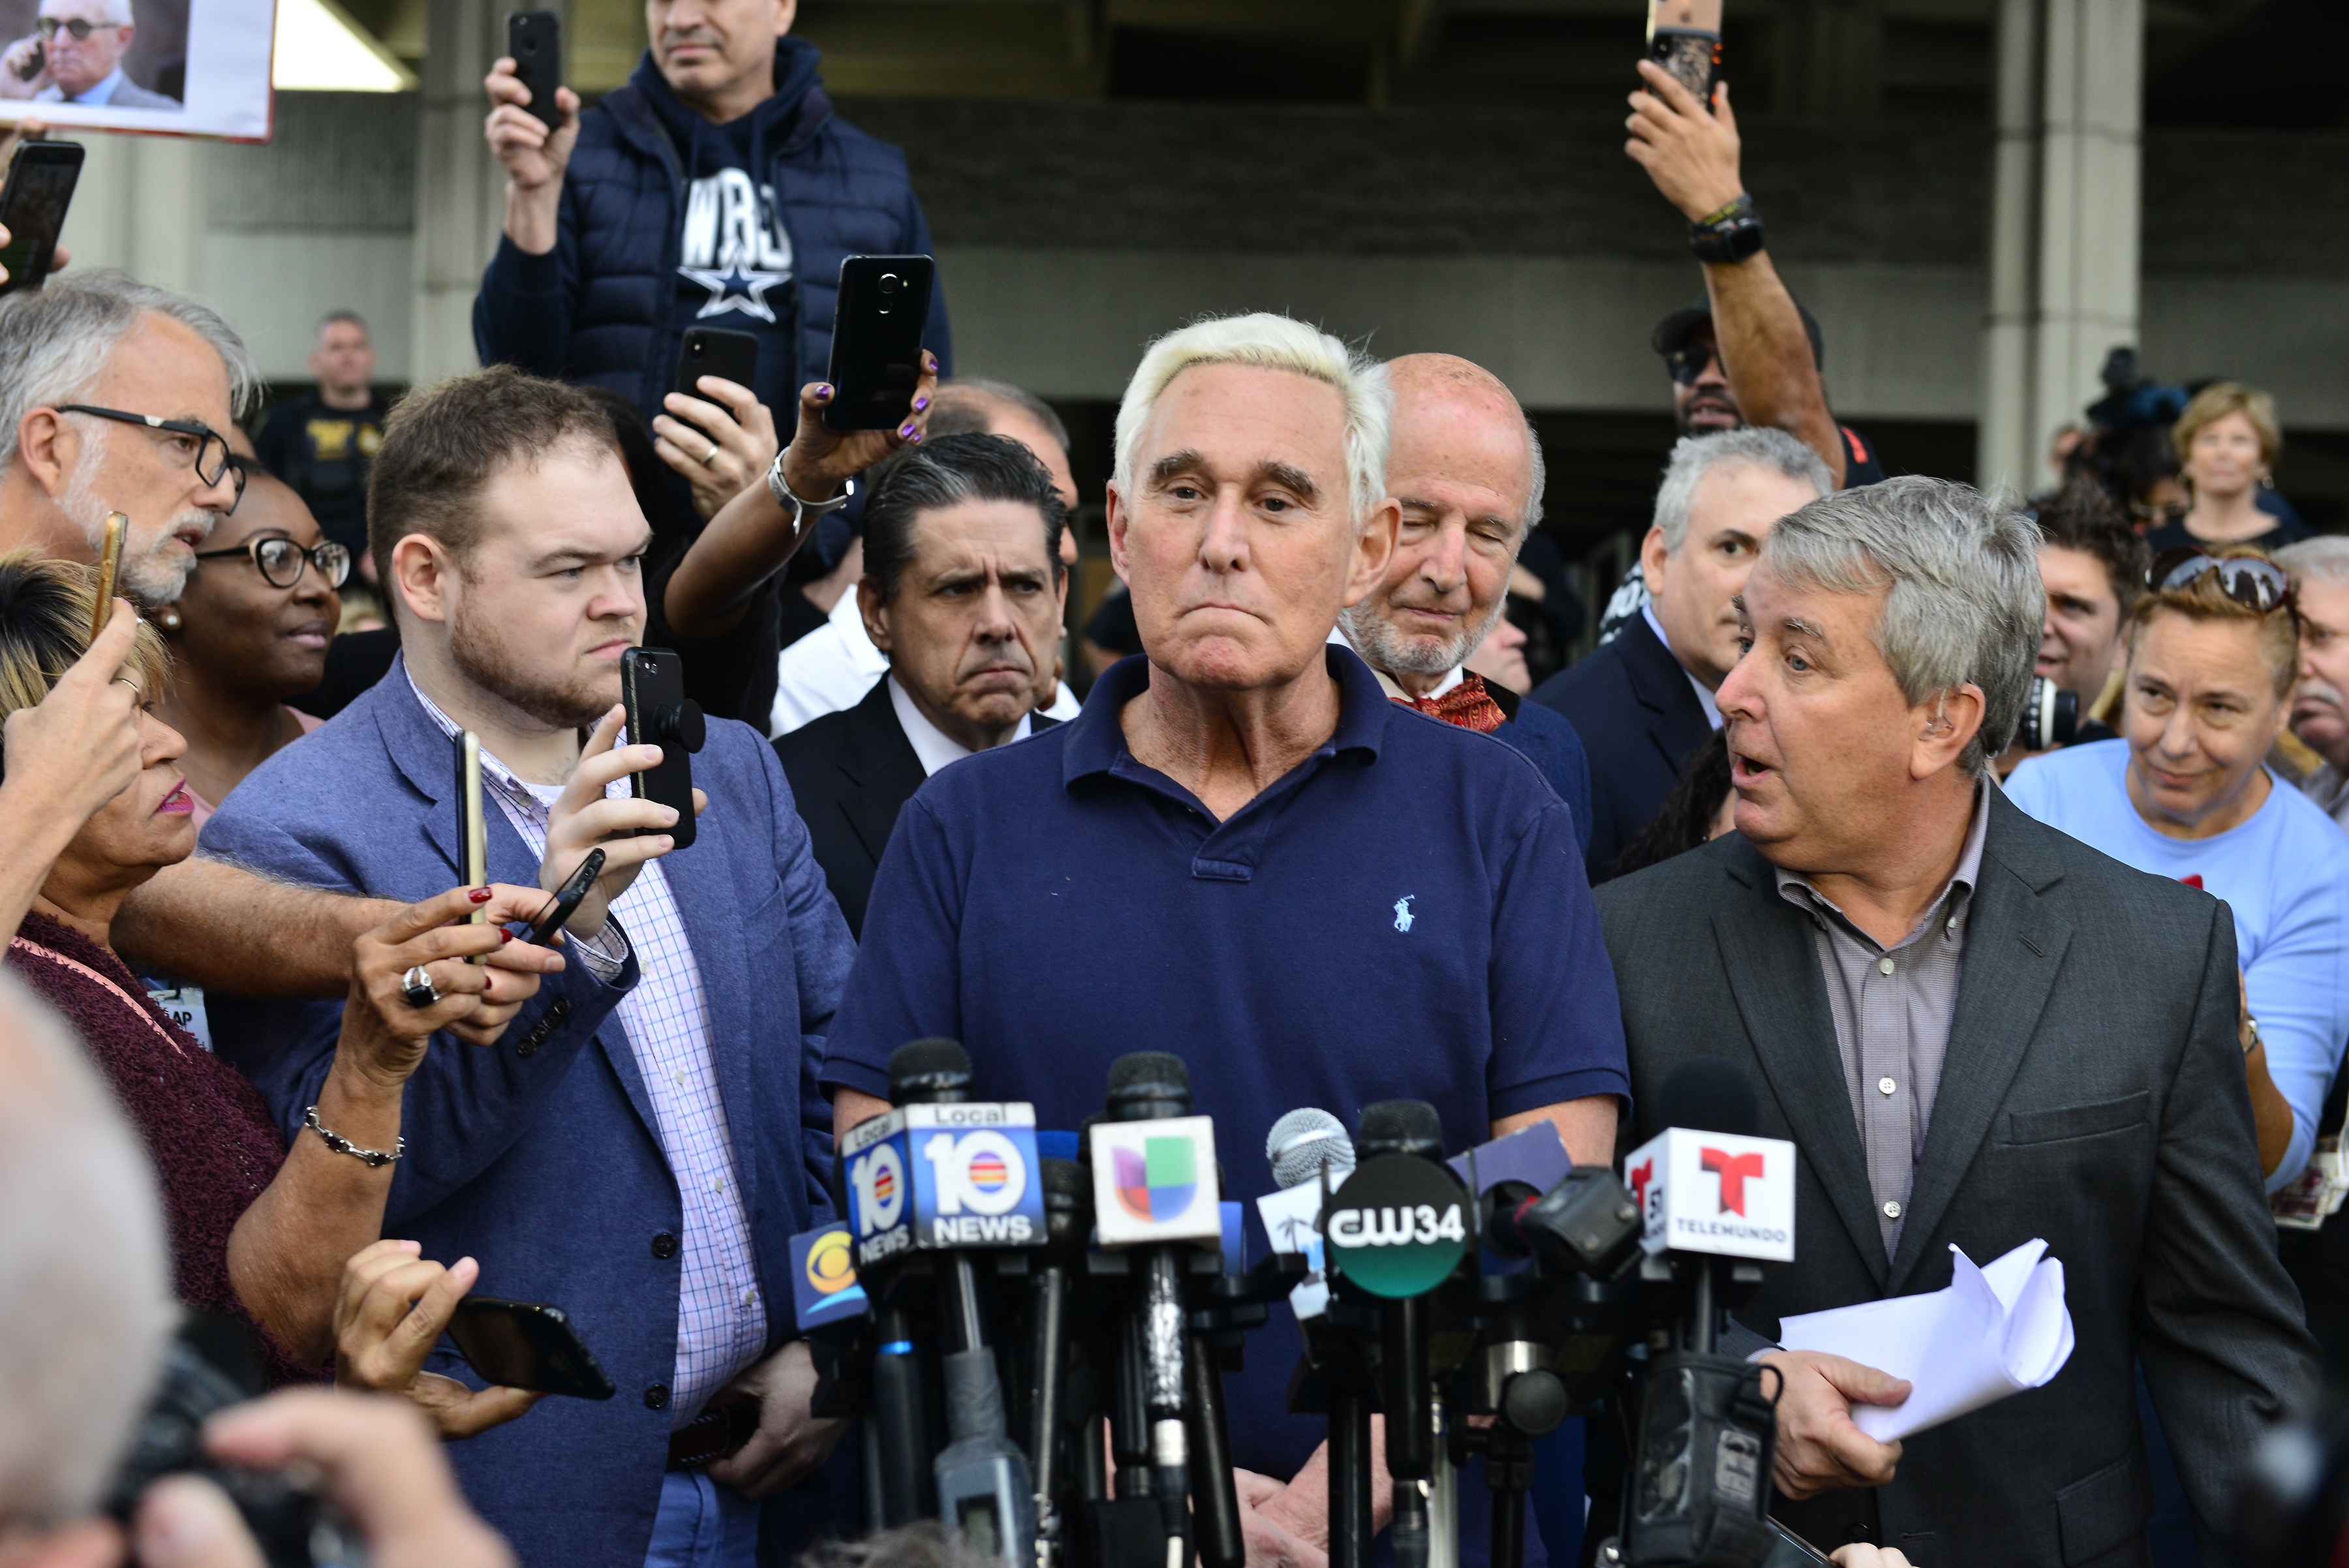 Roger Stone, former Trump campaign advisor, speaks to the media outside the Fort Lauderdale Federal Courthouse after being arrested by the FBI